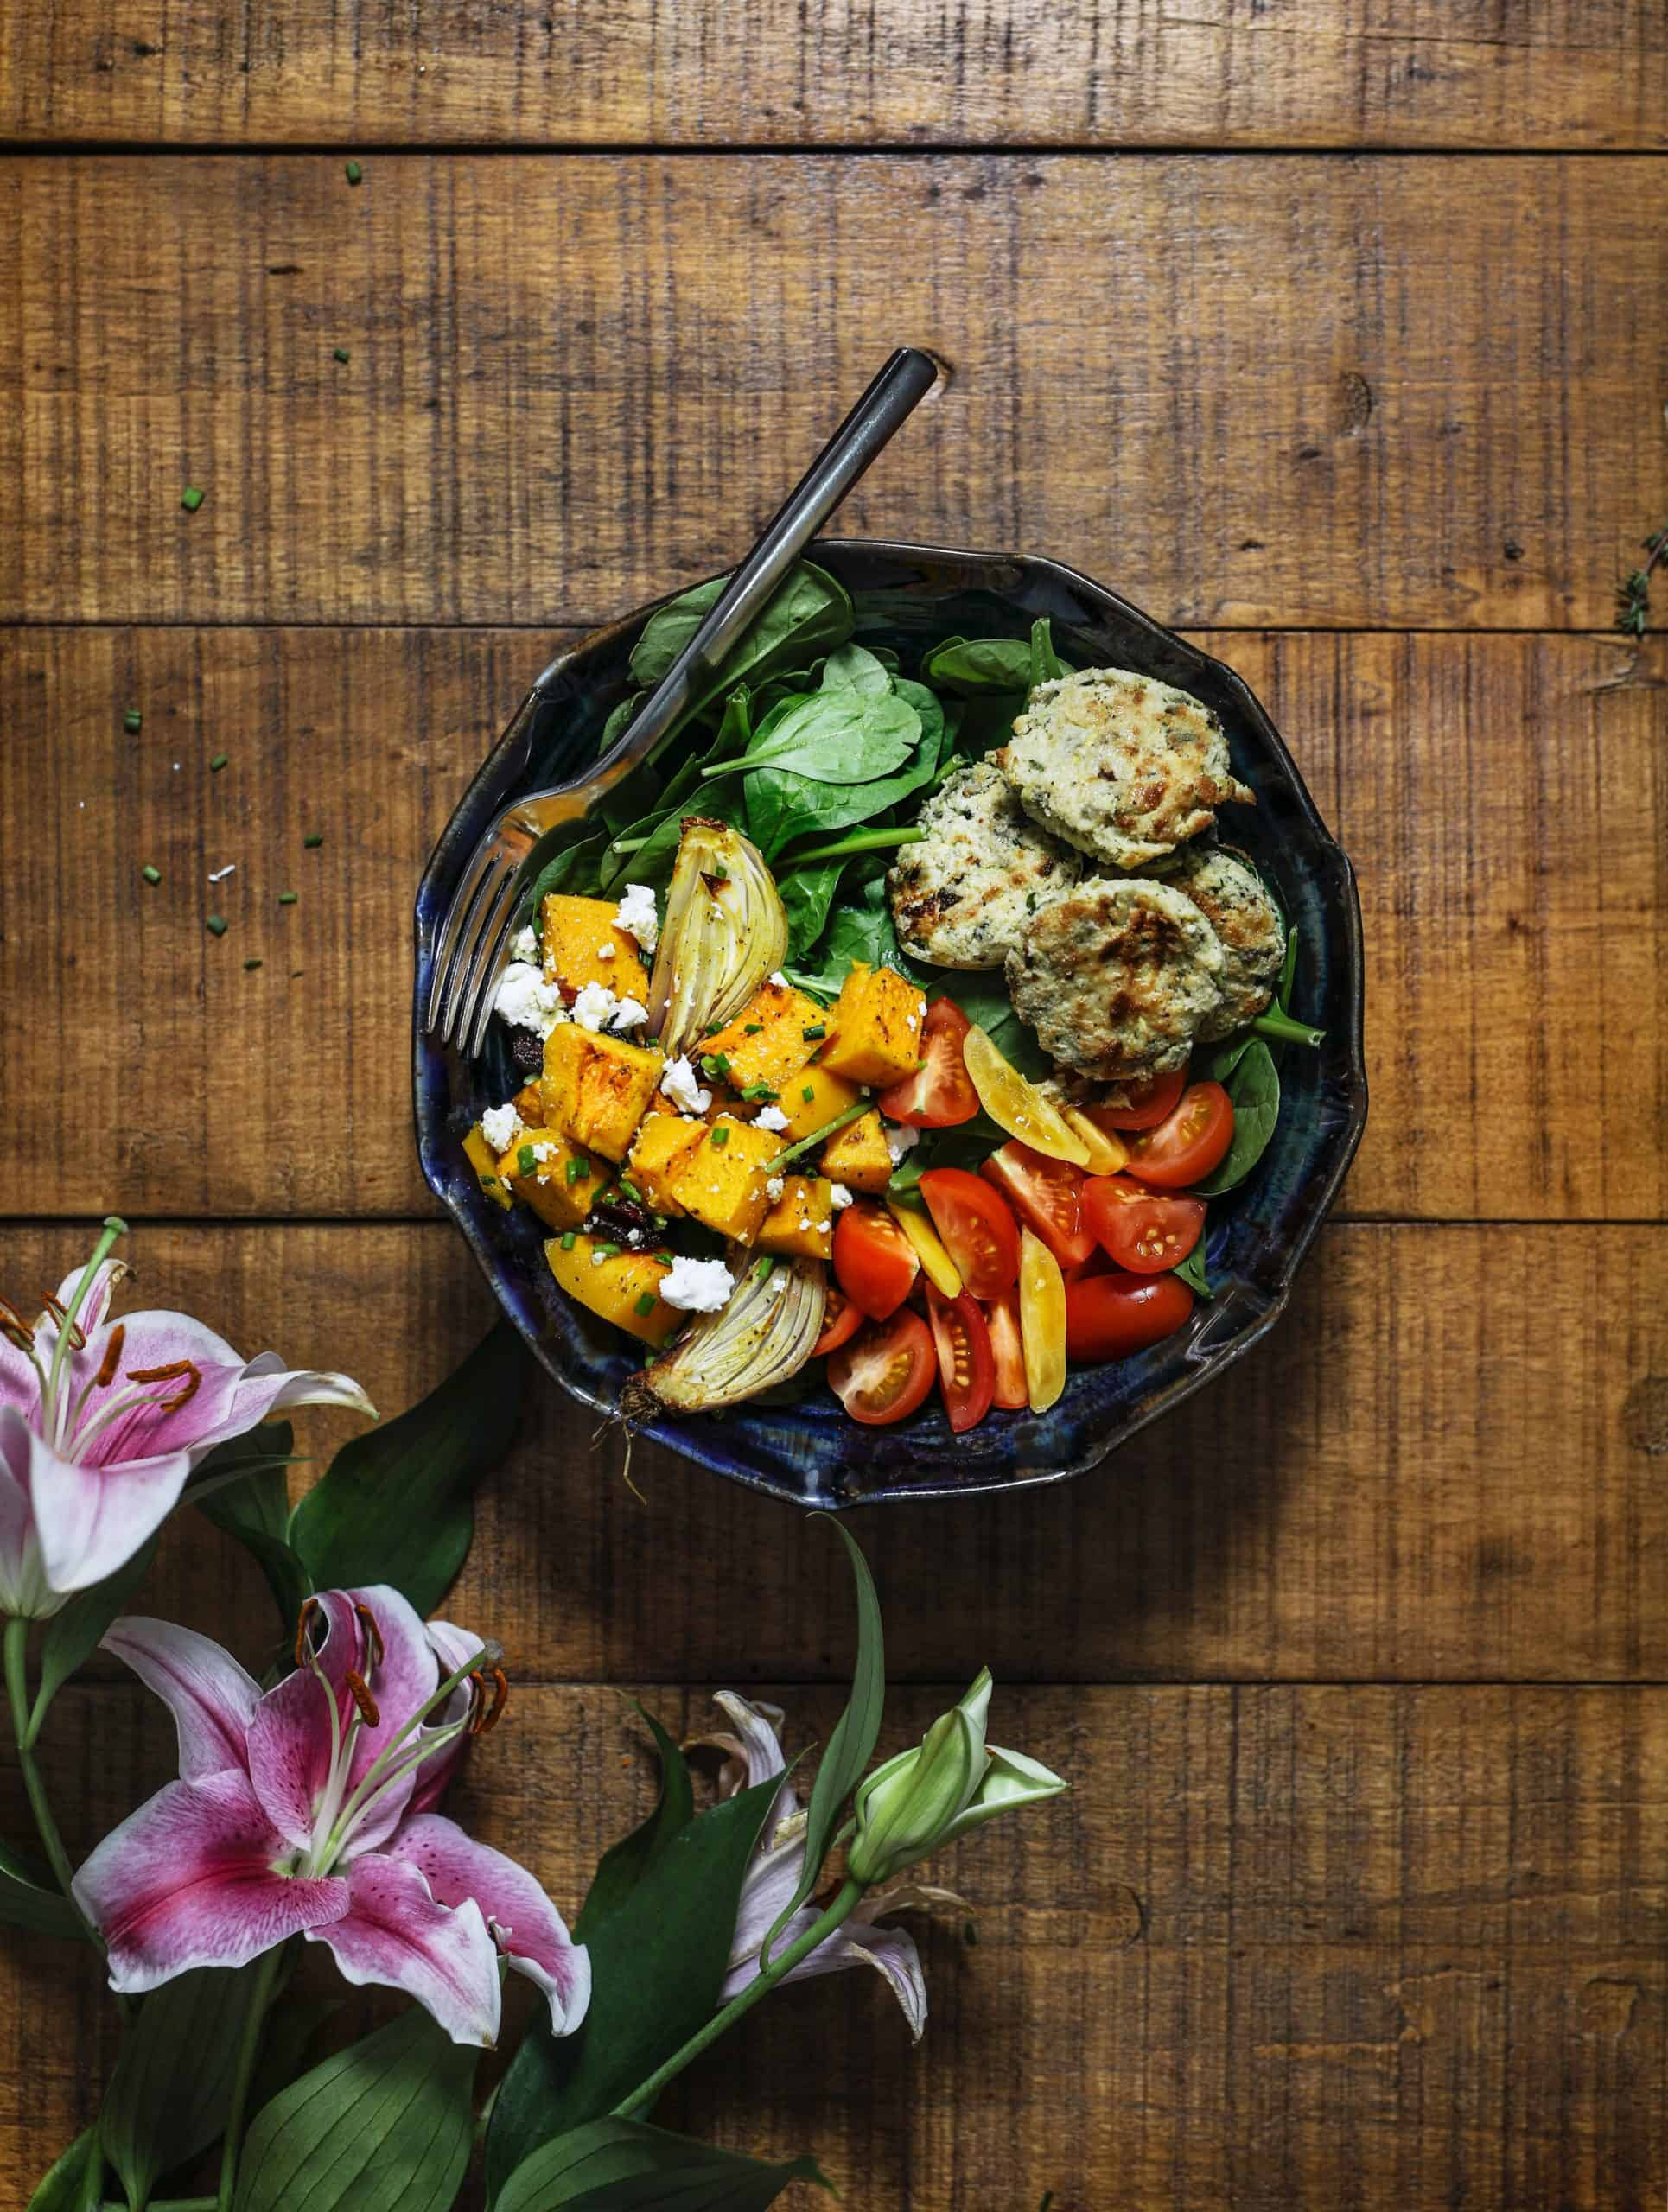 Healthy Eating: Twenty One Eating Habits For Your Child